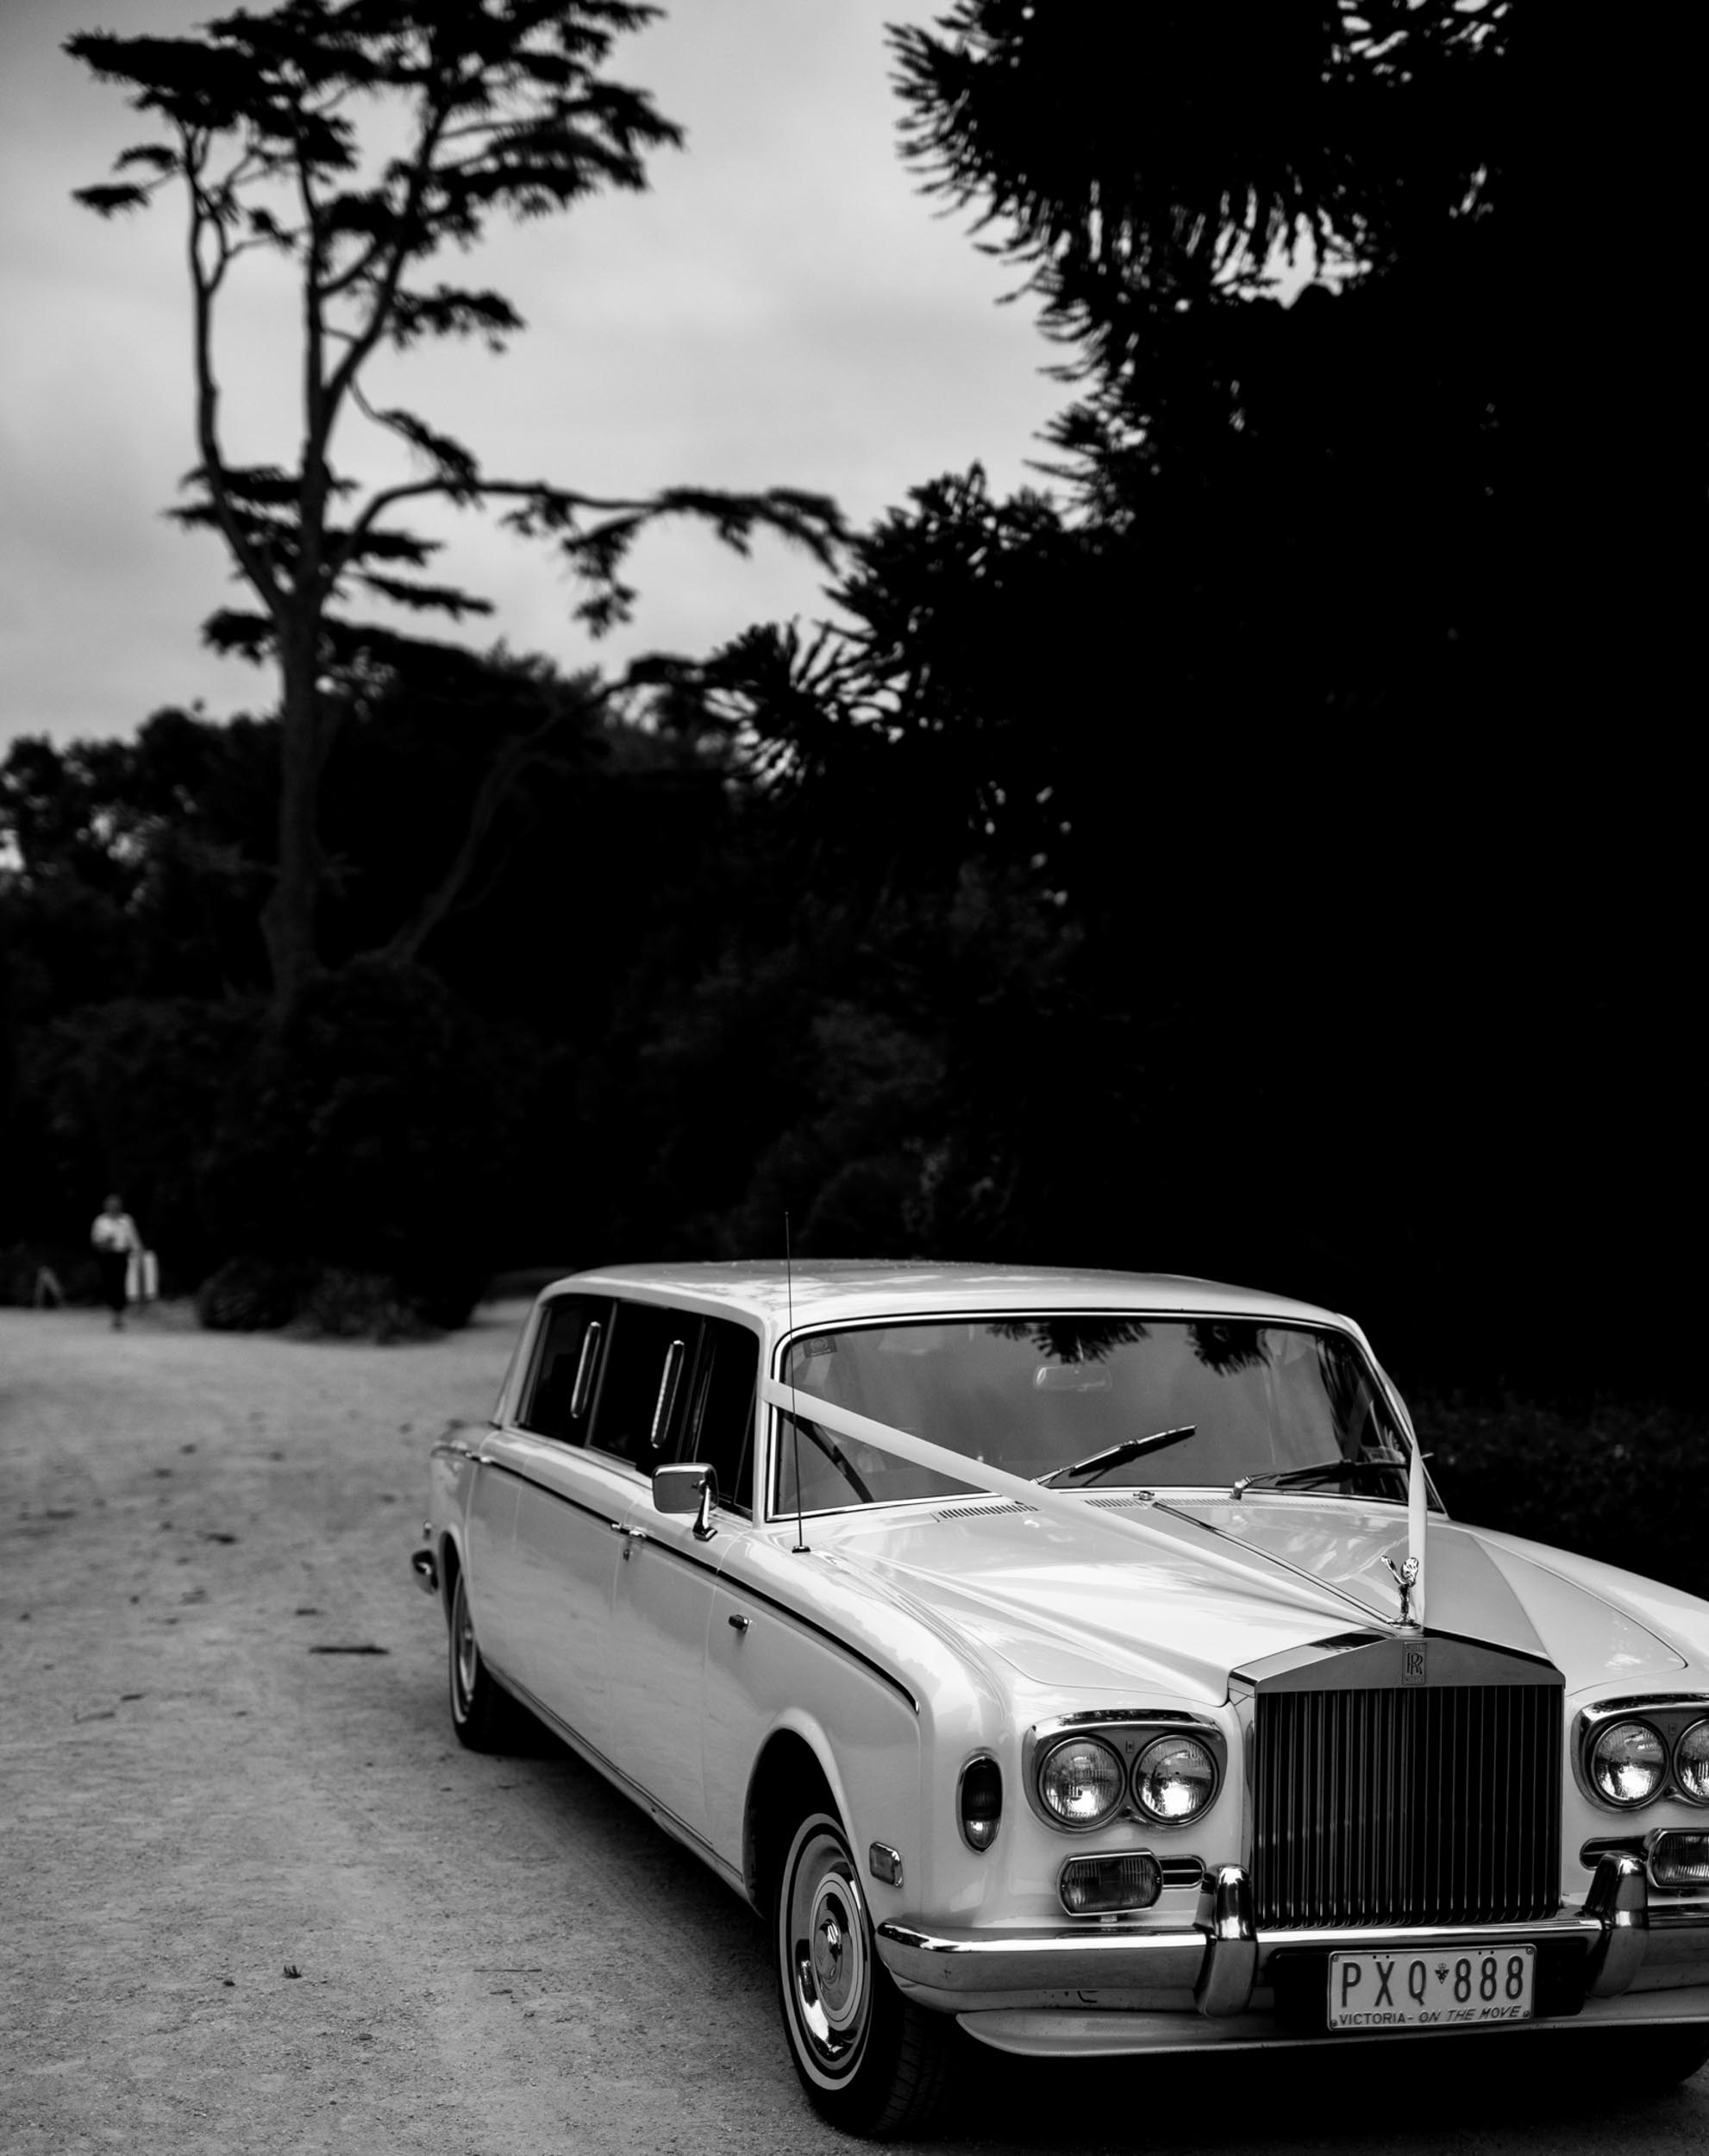 THE CAR - 1970'S ROLLS ROYCE STRETCH LIMOUSINE : Always Classic Cars